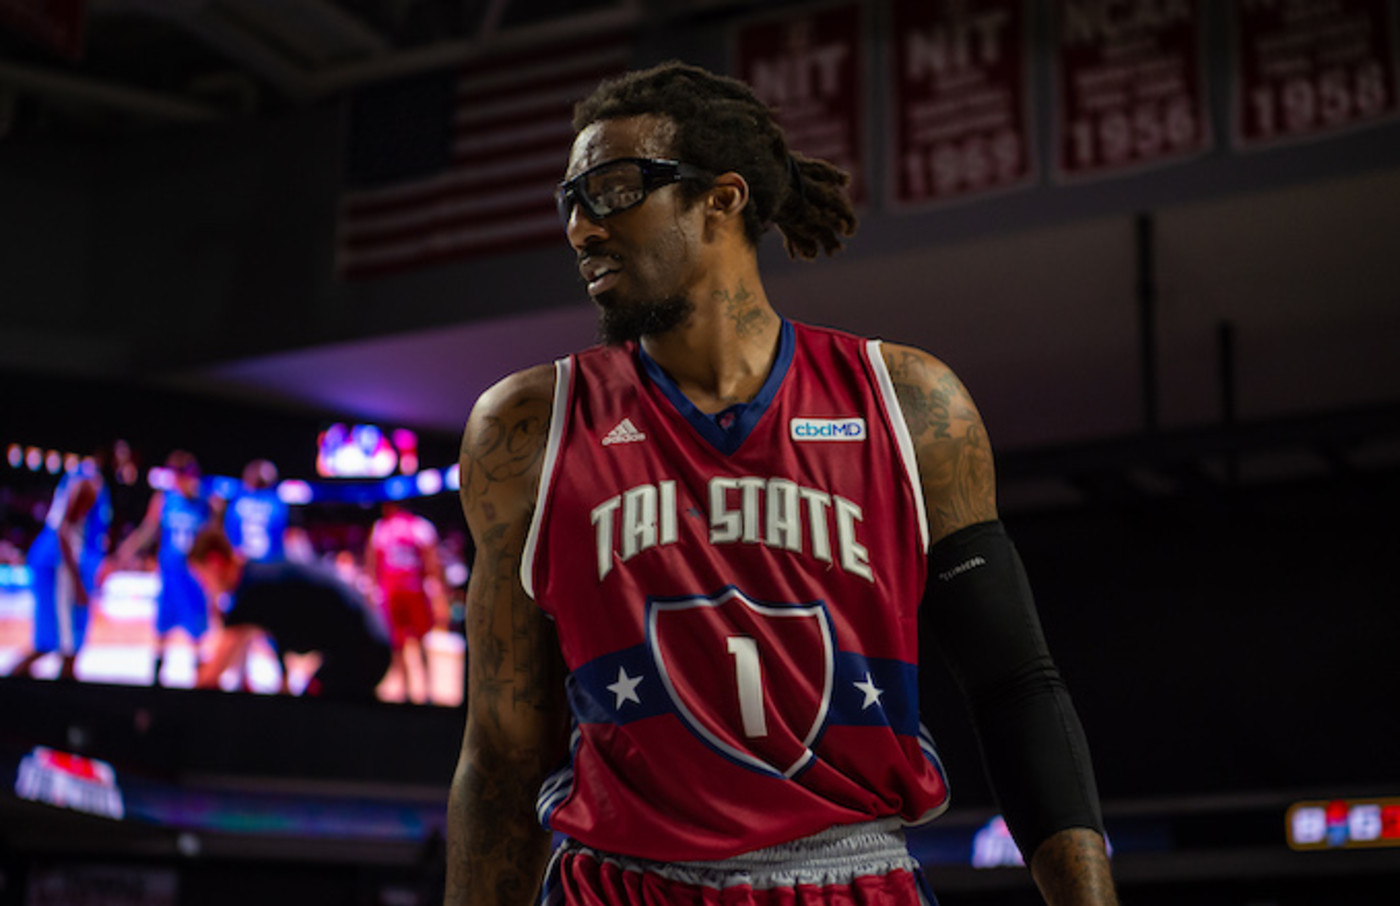 amare-stoudemire-nba-workout